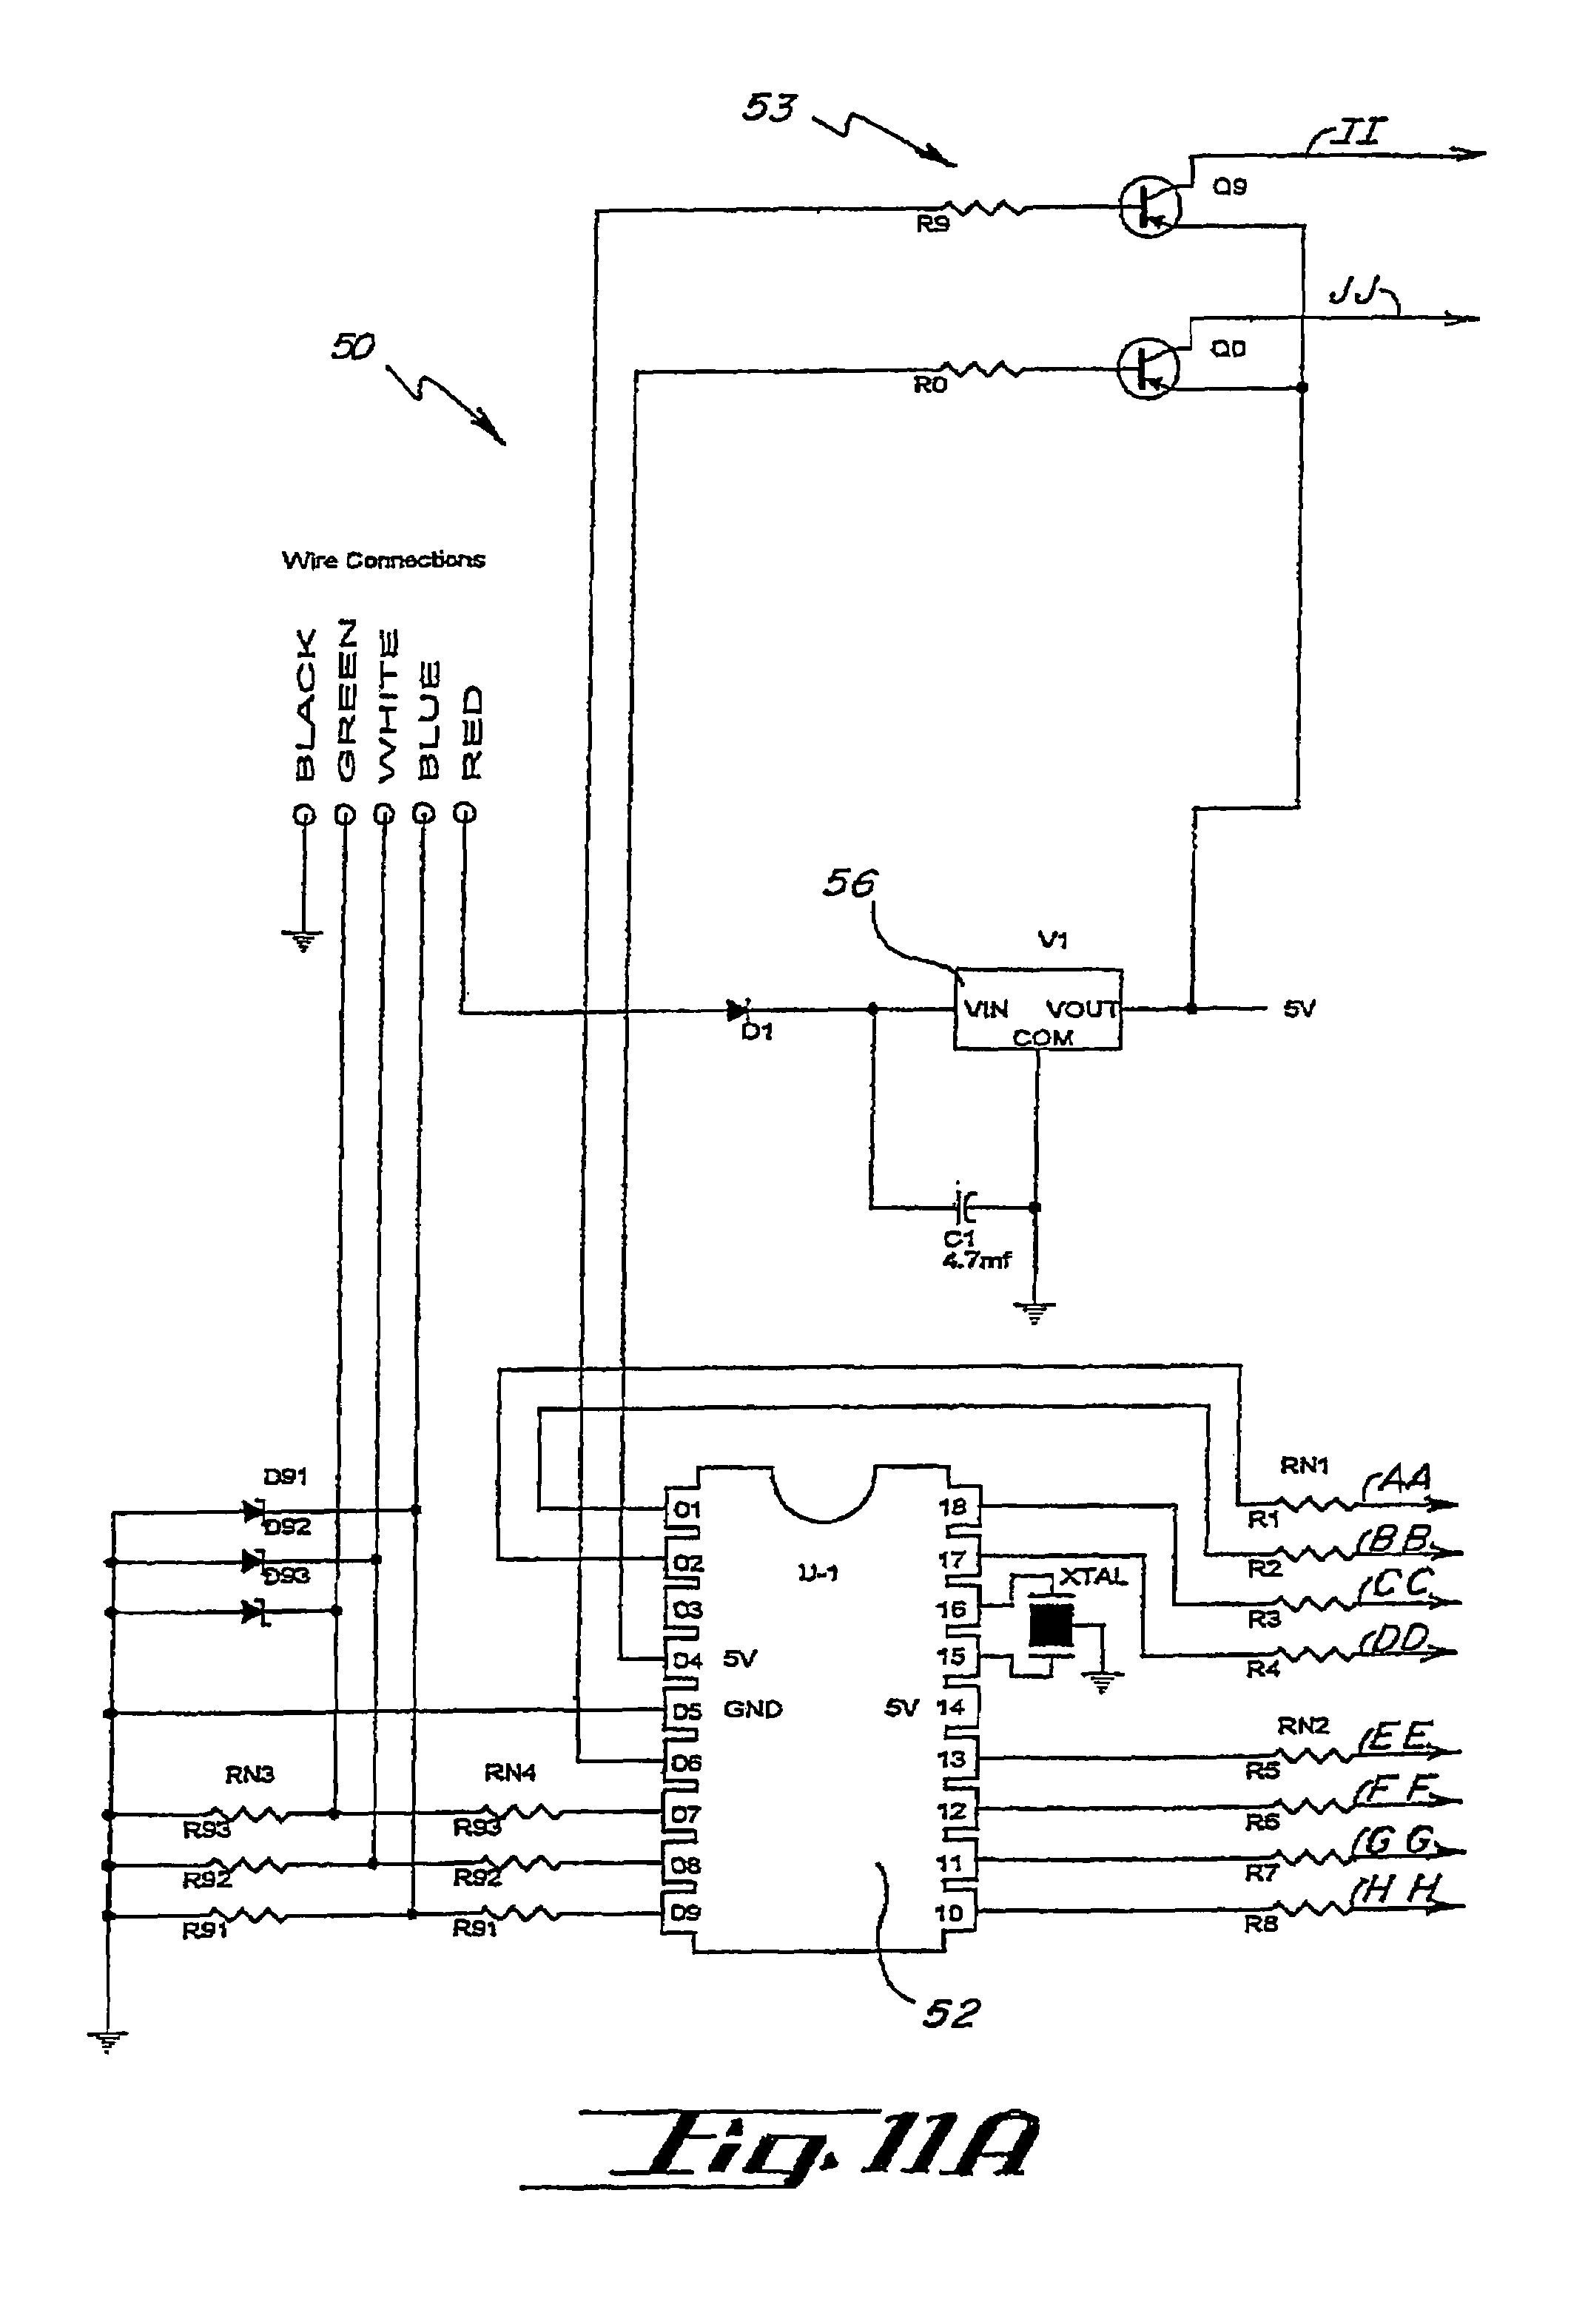 New Shop Wiring Diagram Diagram Wiringdiagram Diagramming